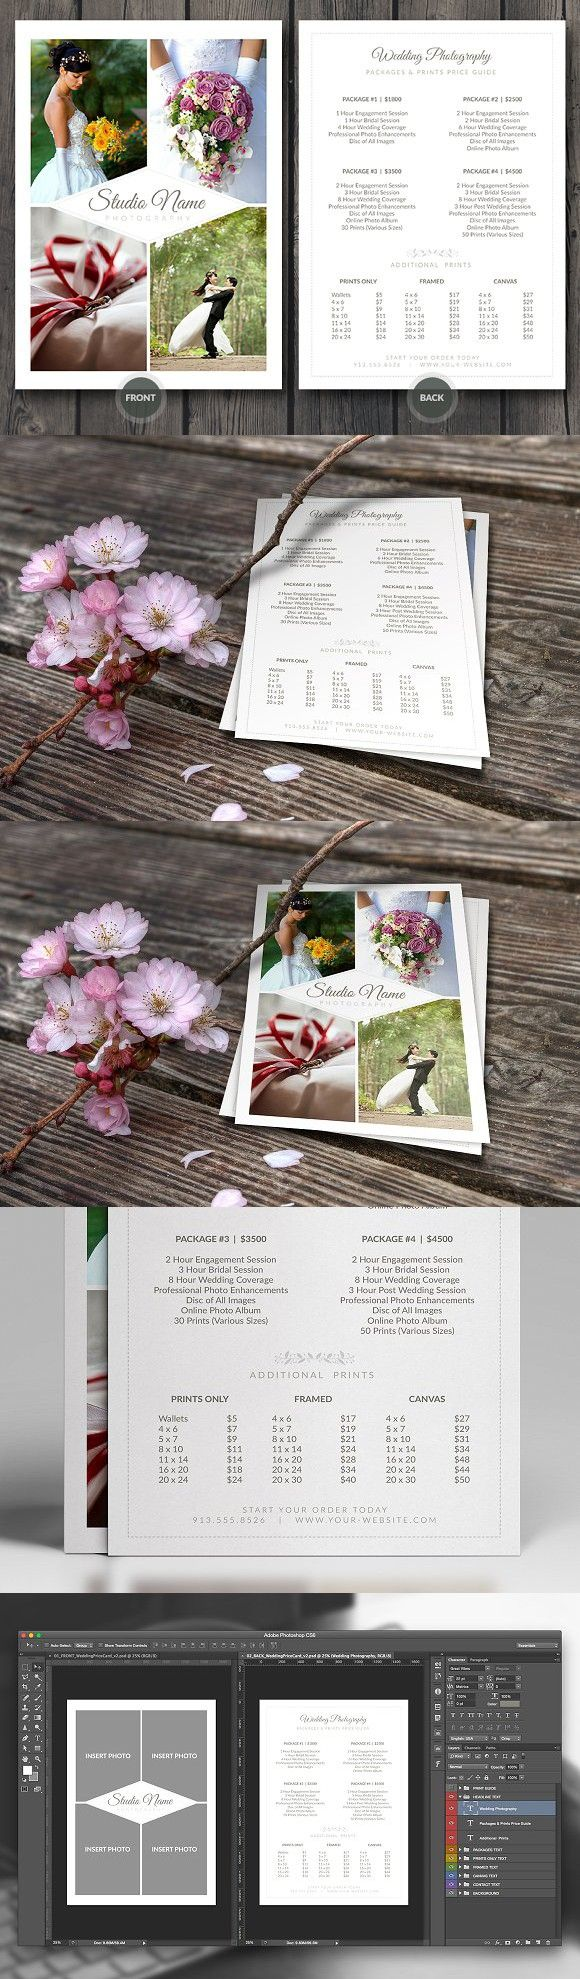 Wedding Photographer Pricing Guide. Wedding Fonts